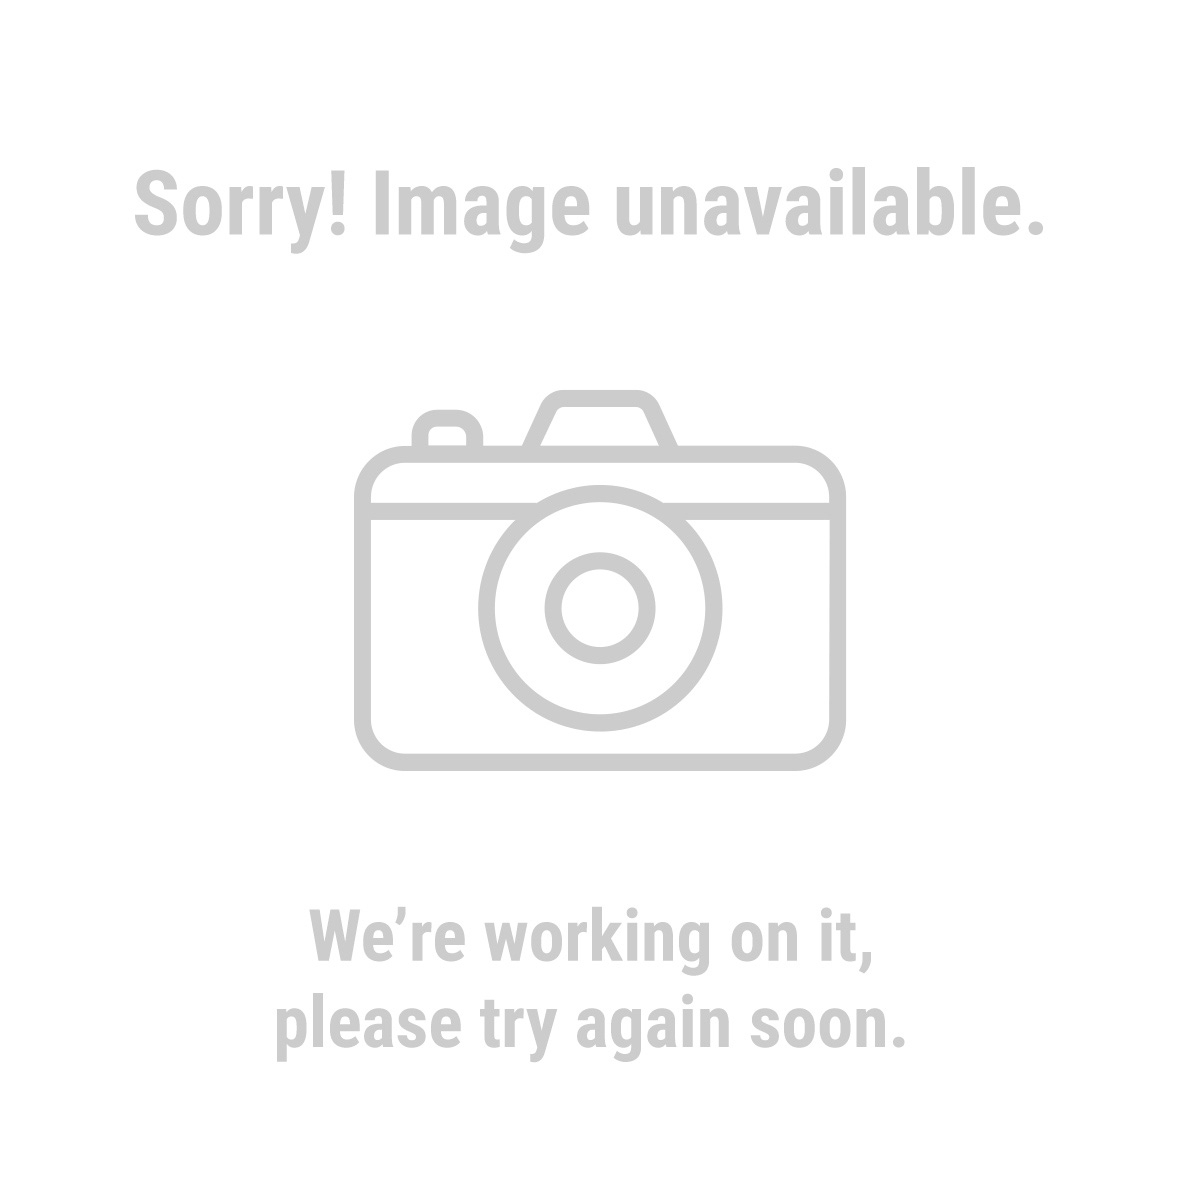 3 Ton Aluminum Racing Jack 2015 Best Auto Reviews